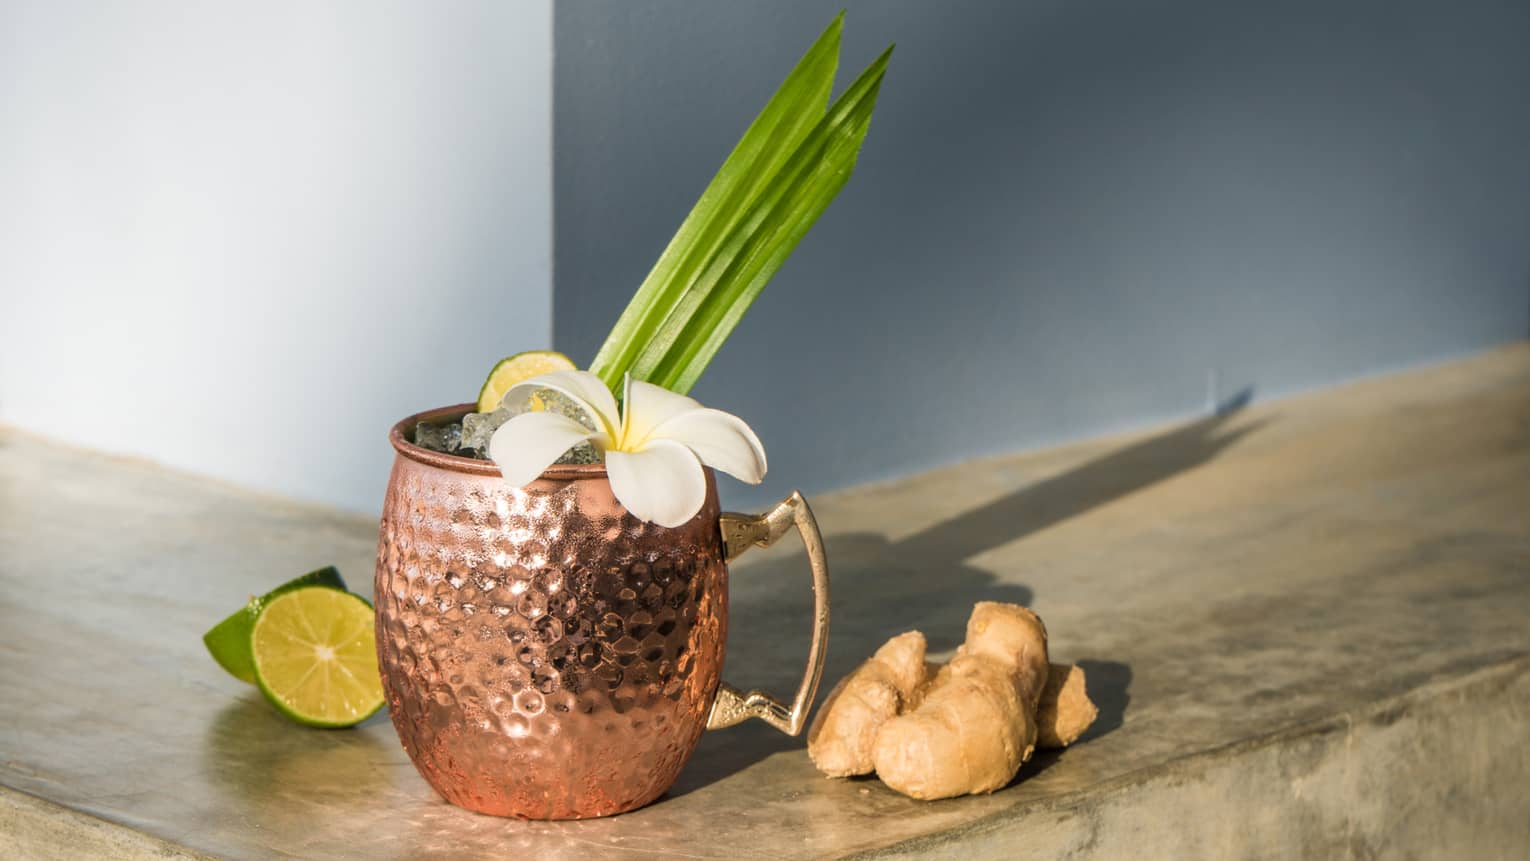 A moscow mule in a hammered copper cup with limes and ginger beside it on a wooden ledge